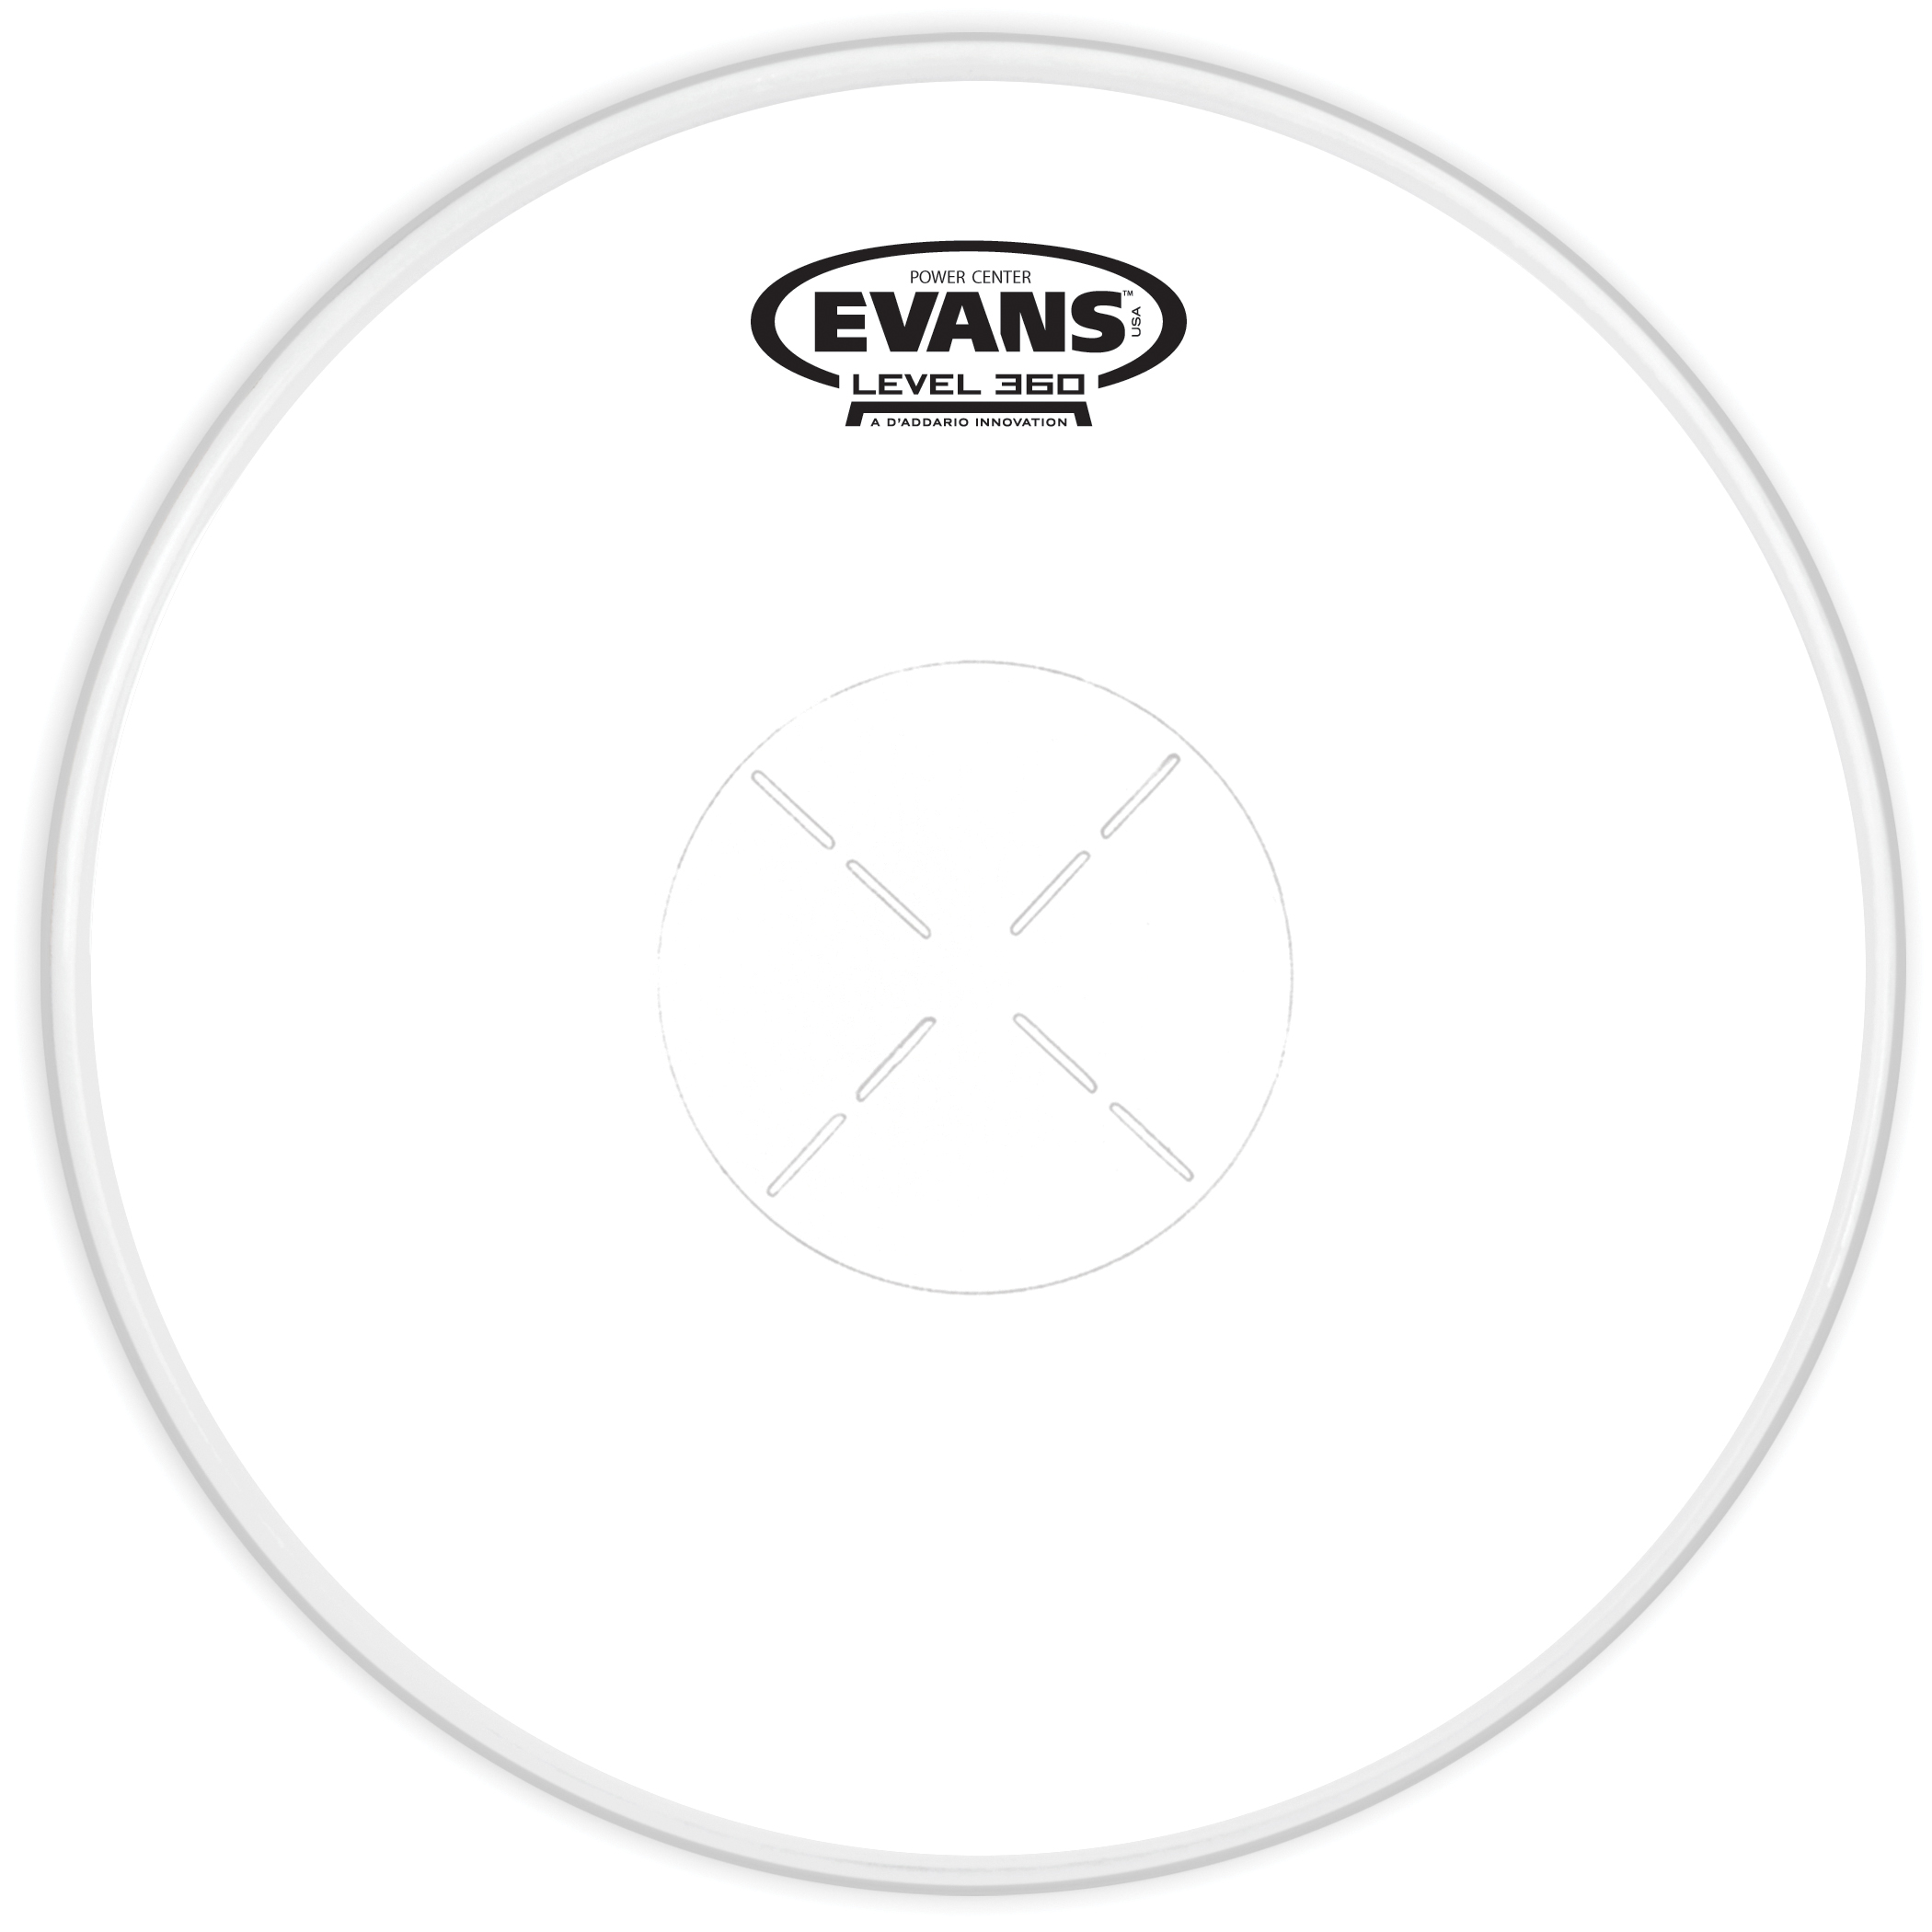 Evans Power Center Drum Head 13